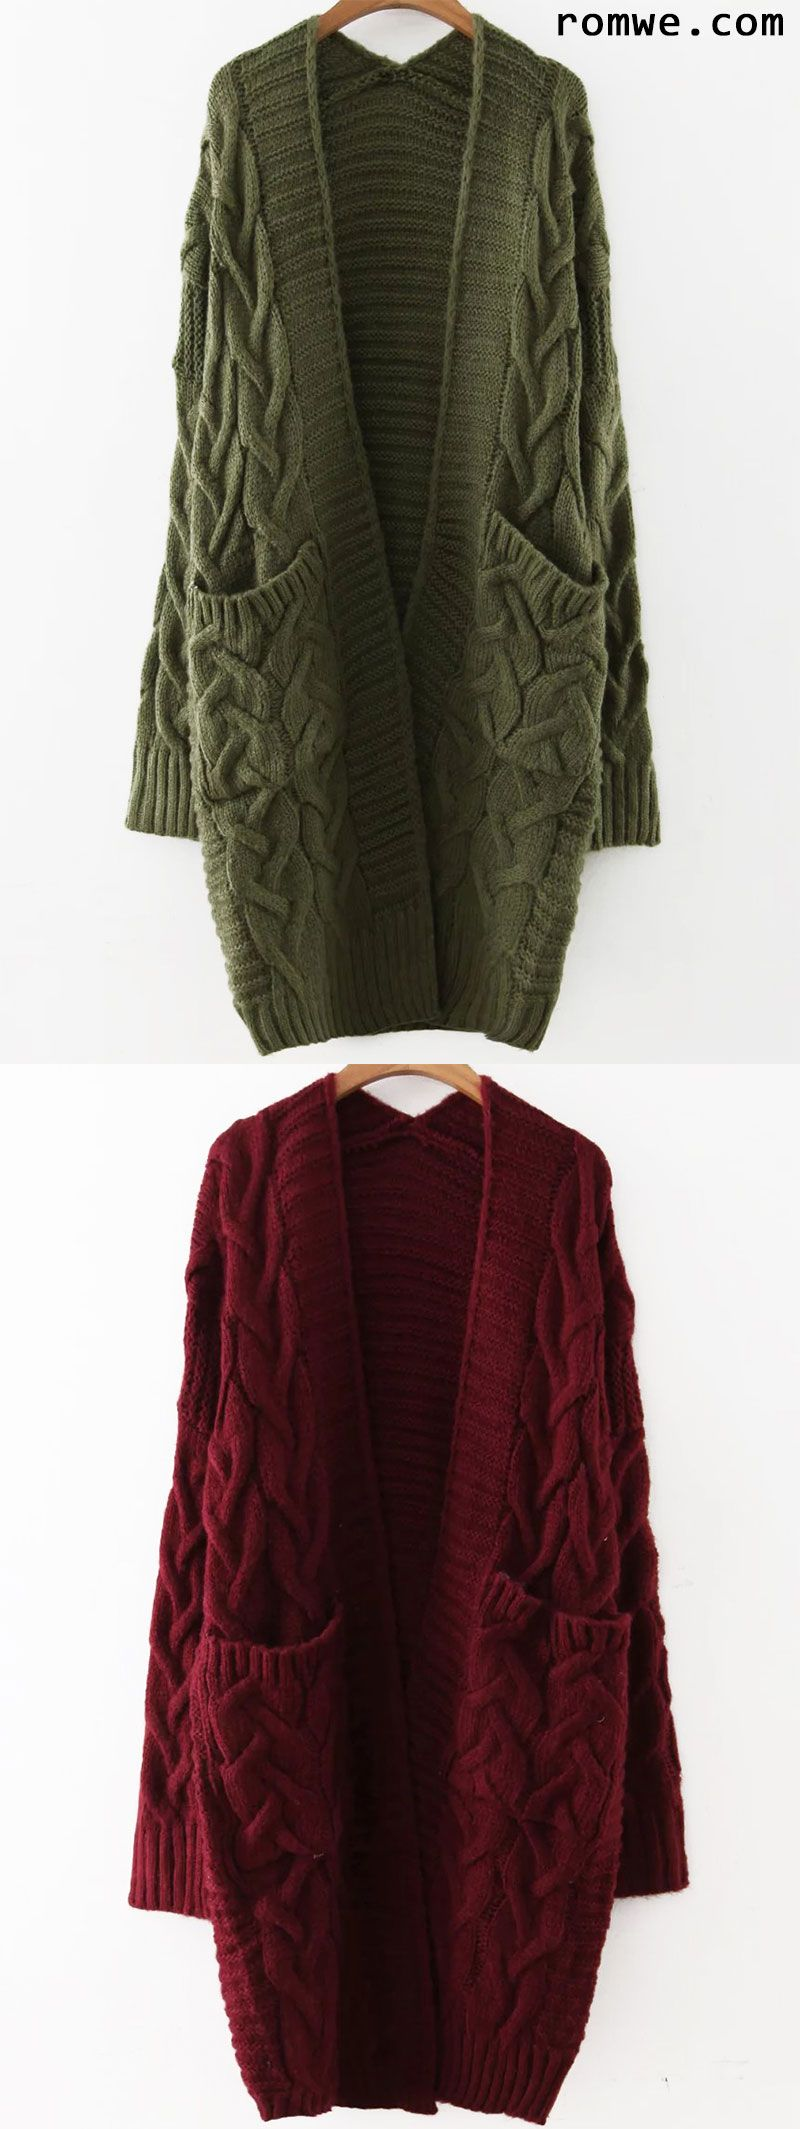 Cable Knit Front Pocket Long Sweater Coat | Romwe Hot Buy ...